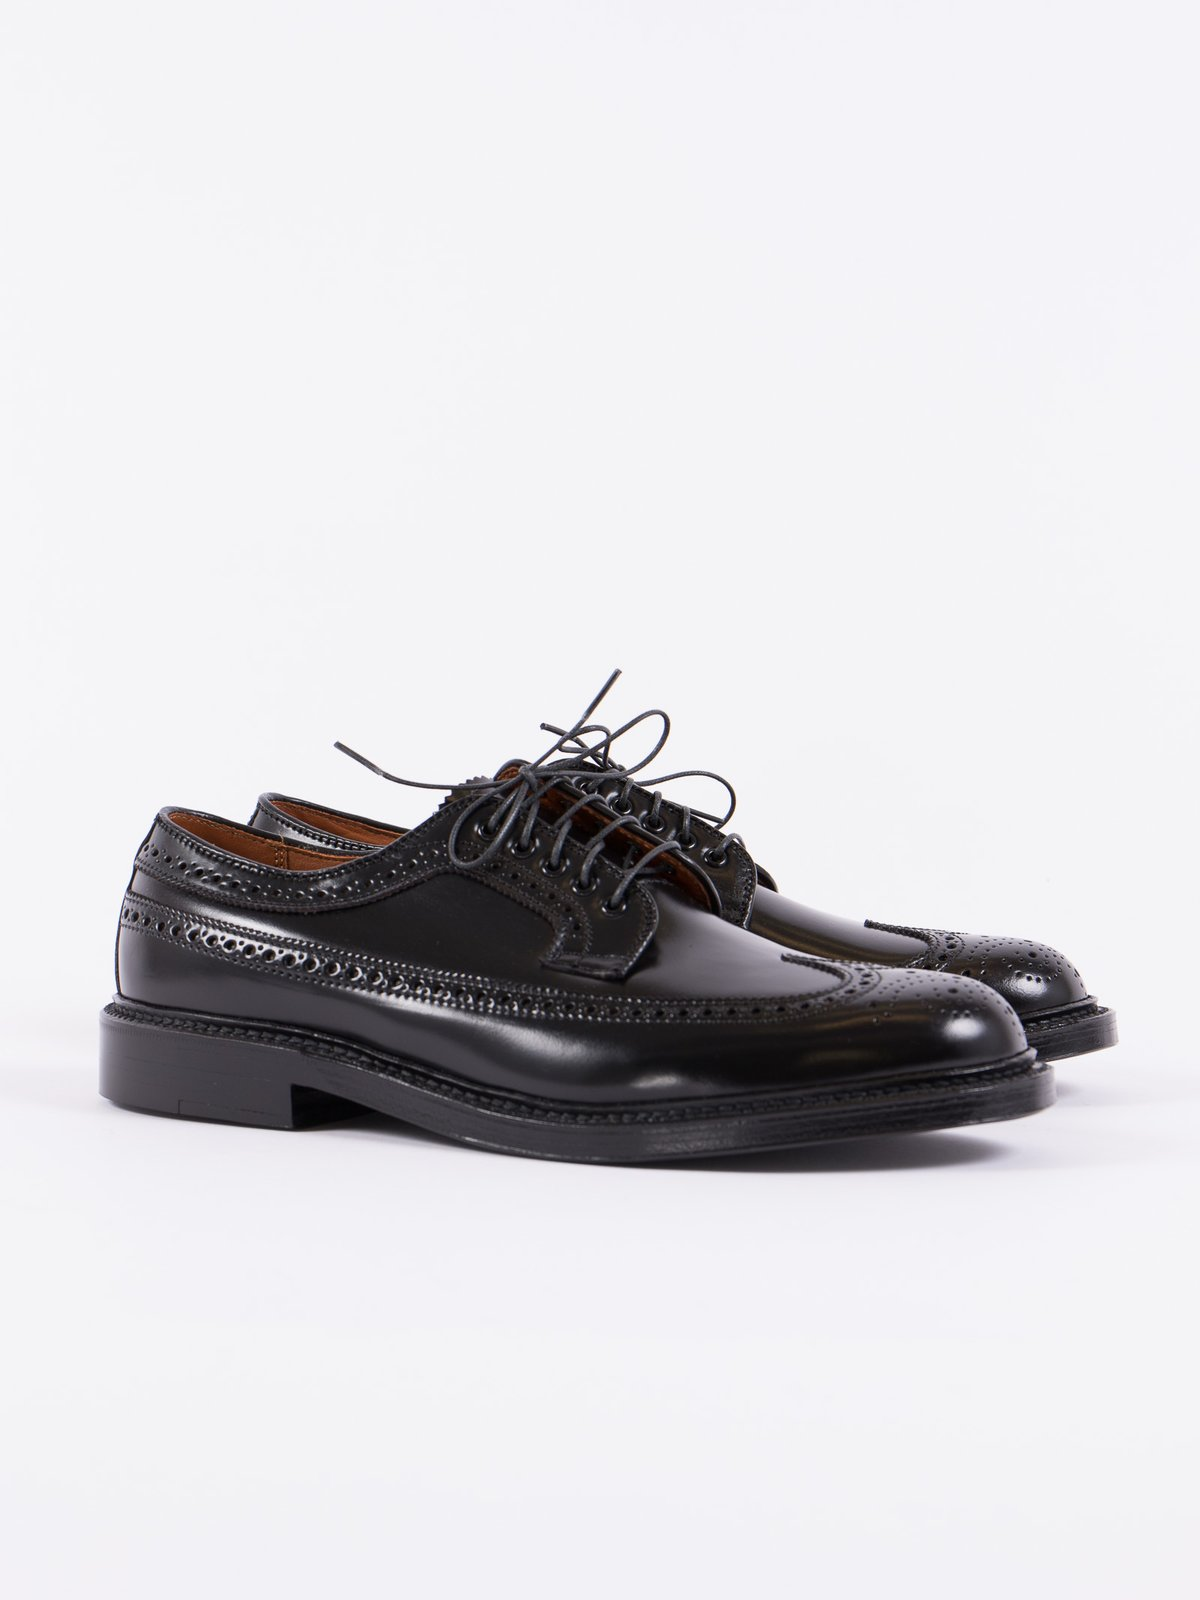 Black Cordovan Long Wing Blucher - Image 1